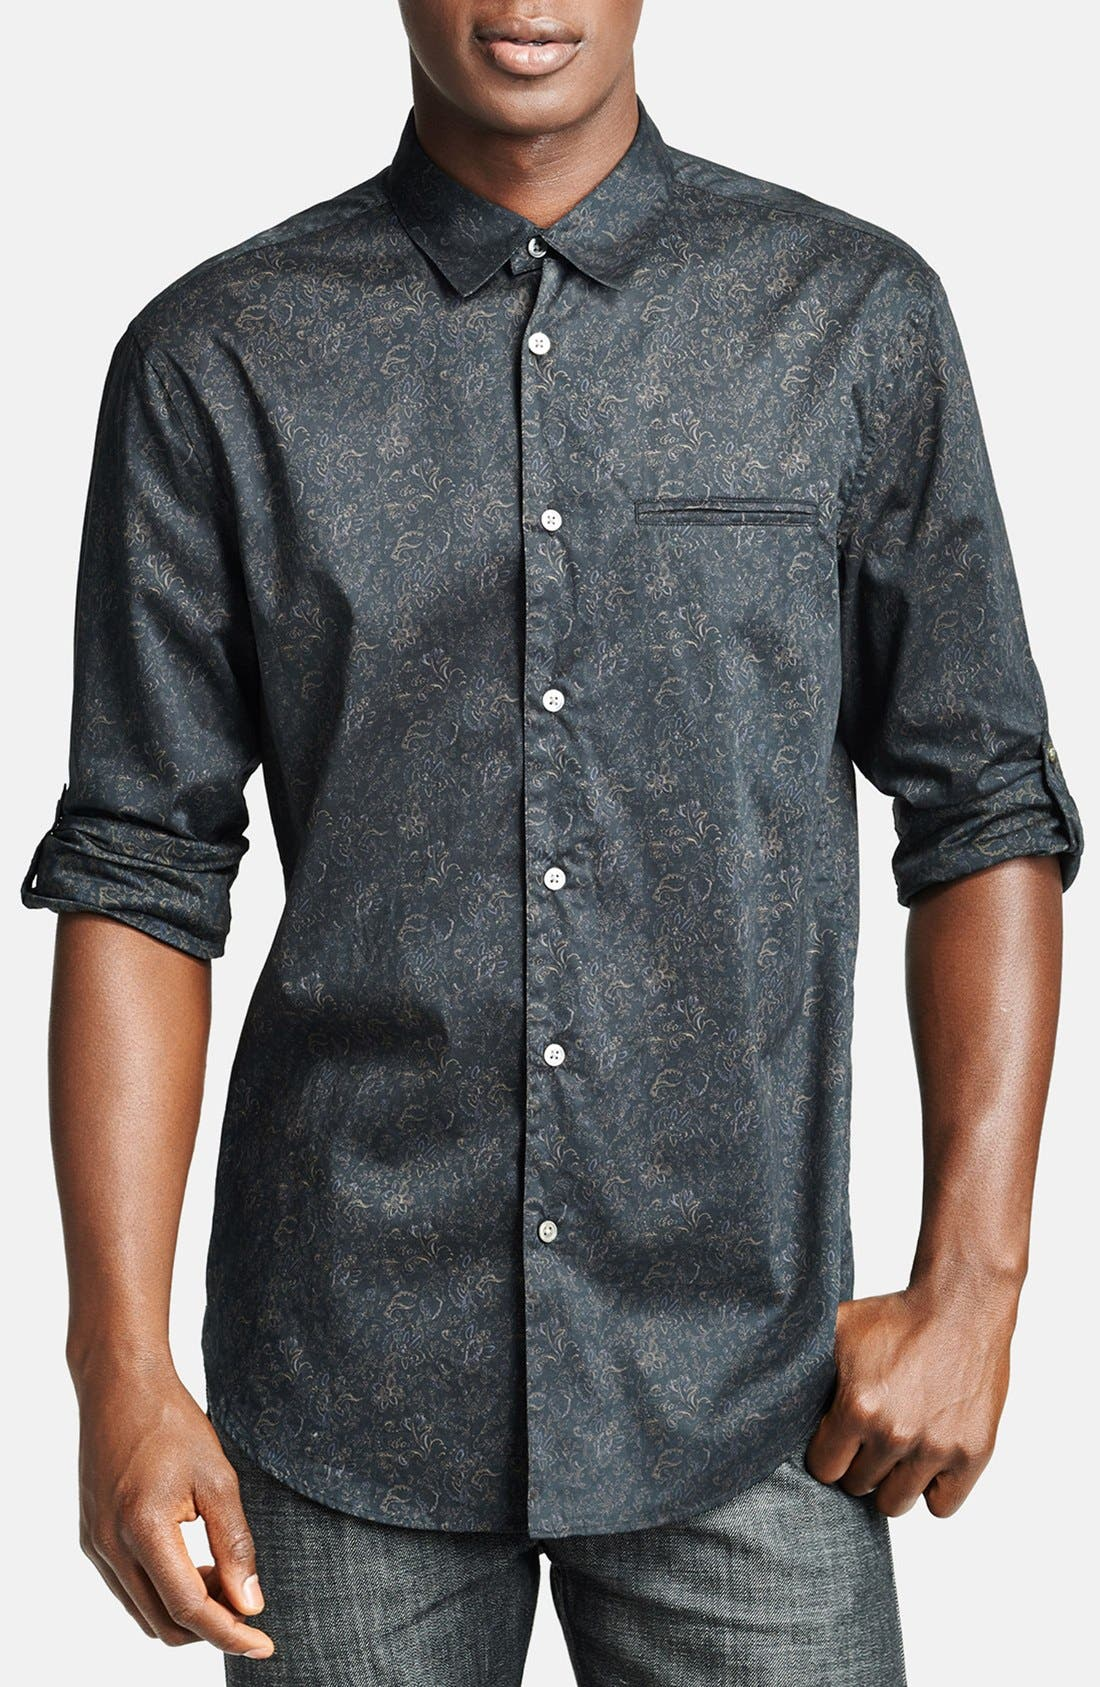 Main Image - John Varvatos Collection Slim Fit Floral Print Cotton Shirt with Button Tab Sleeves